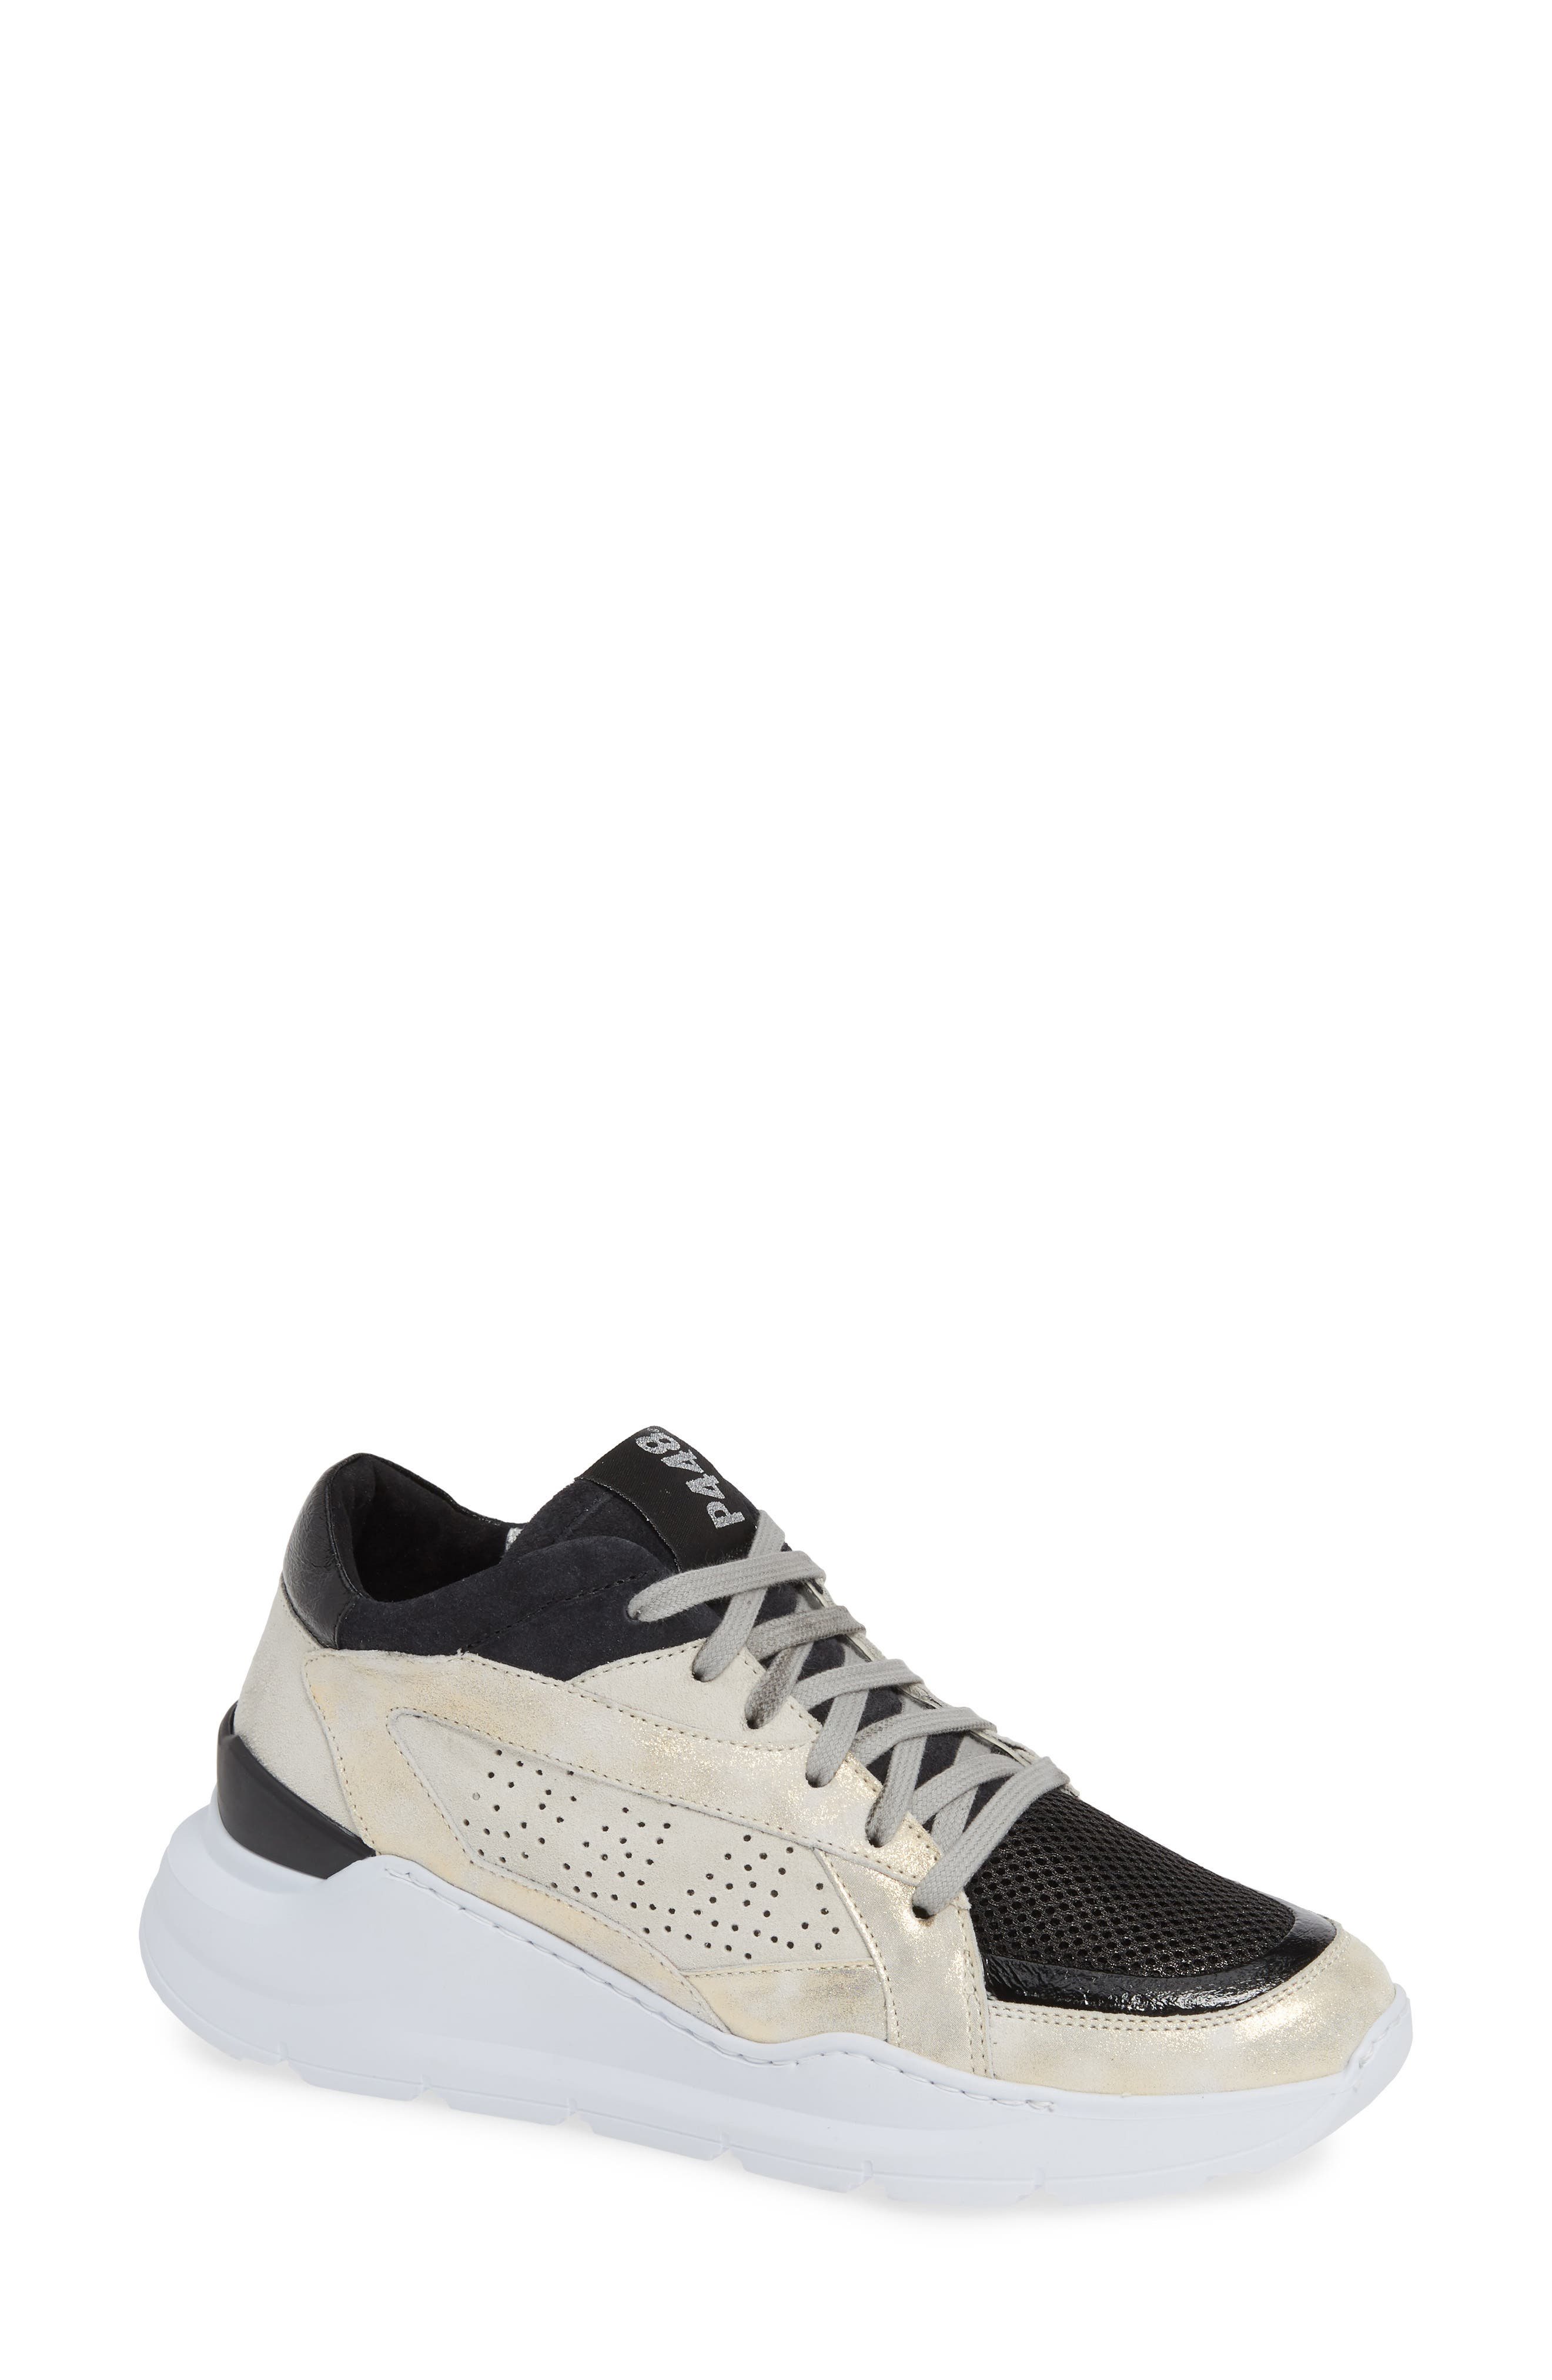 P448 Leia Sneaker in White Suede